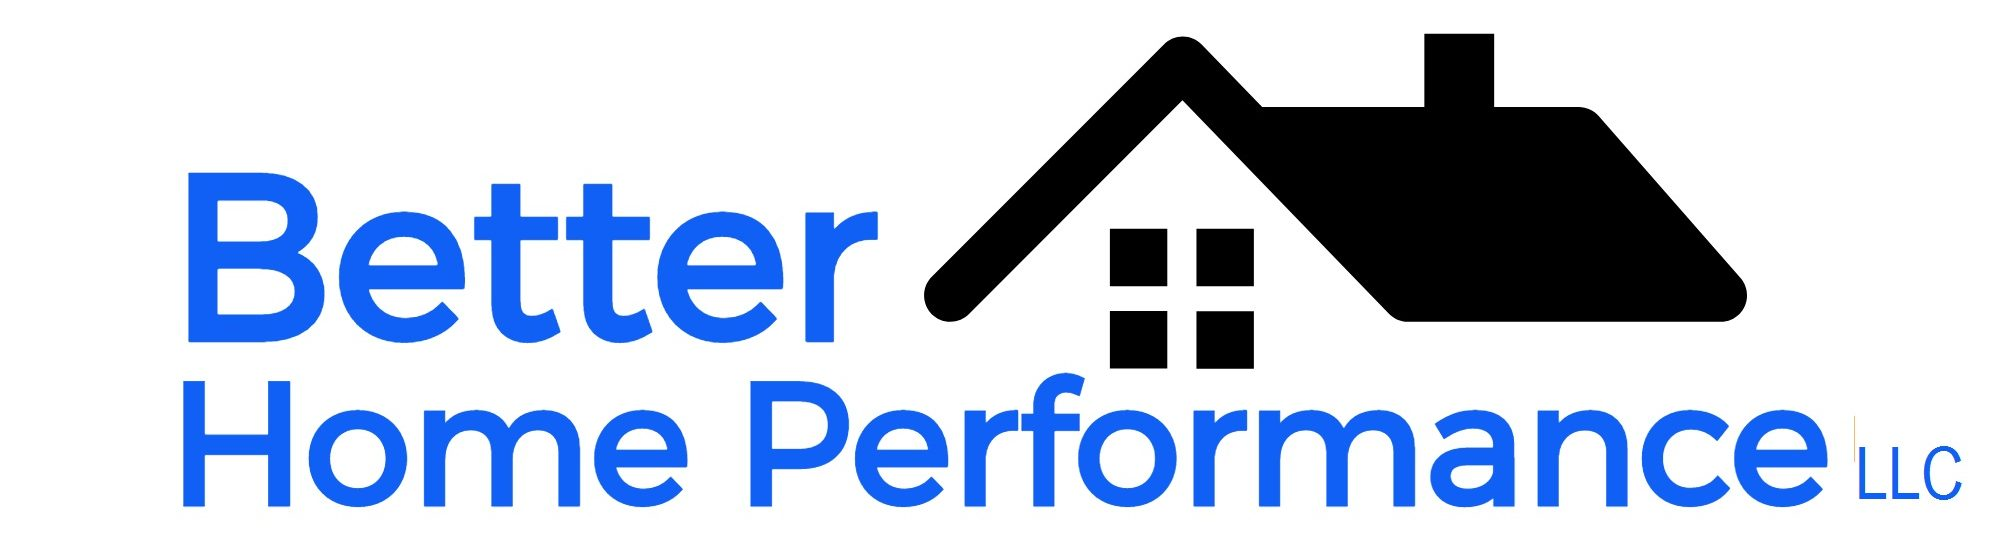 http://betterhomeperformancellc.com/wp-content/uploads/2017/06/cropped-Better-logo-with-llc-1.jpg